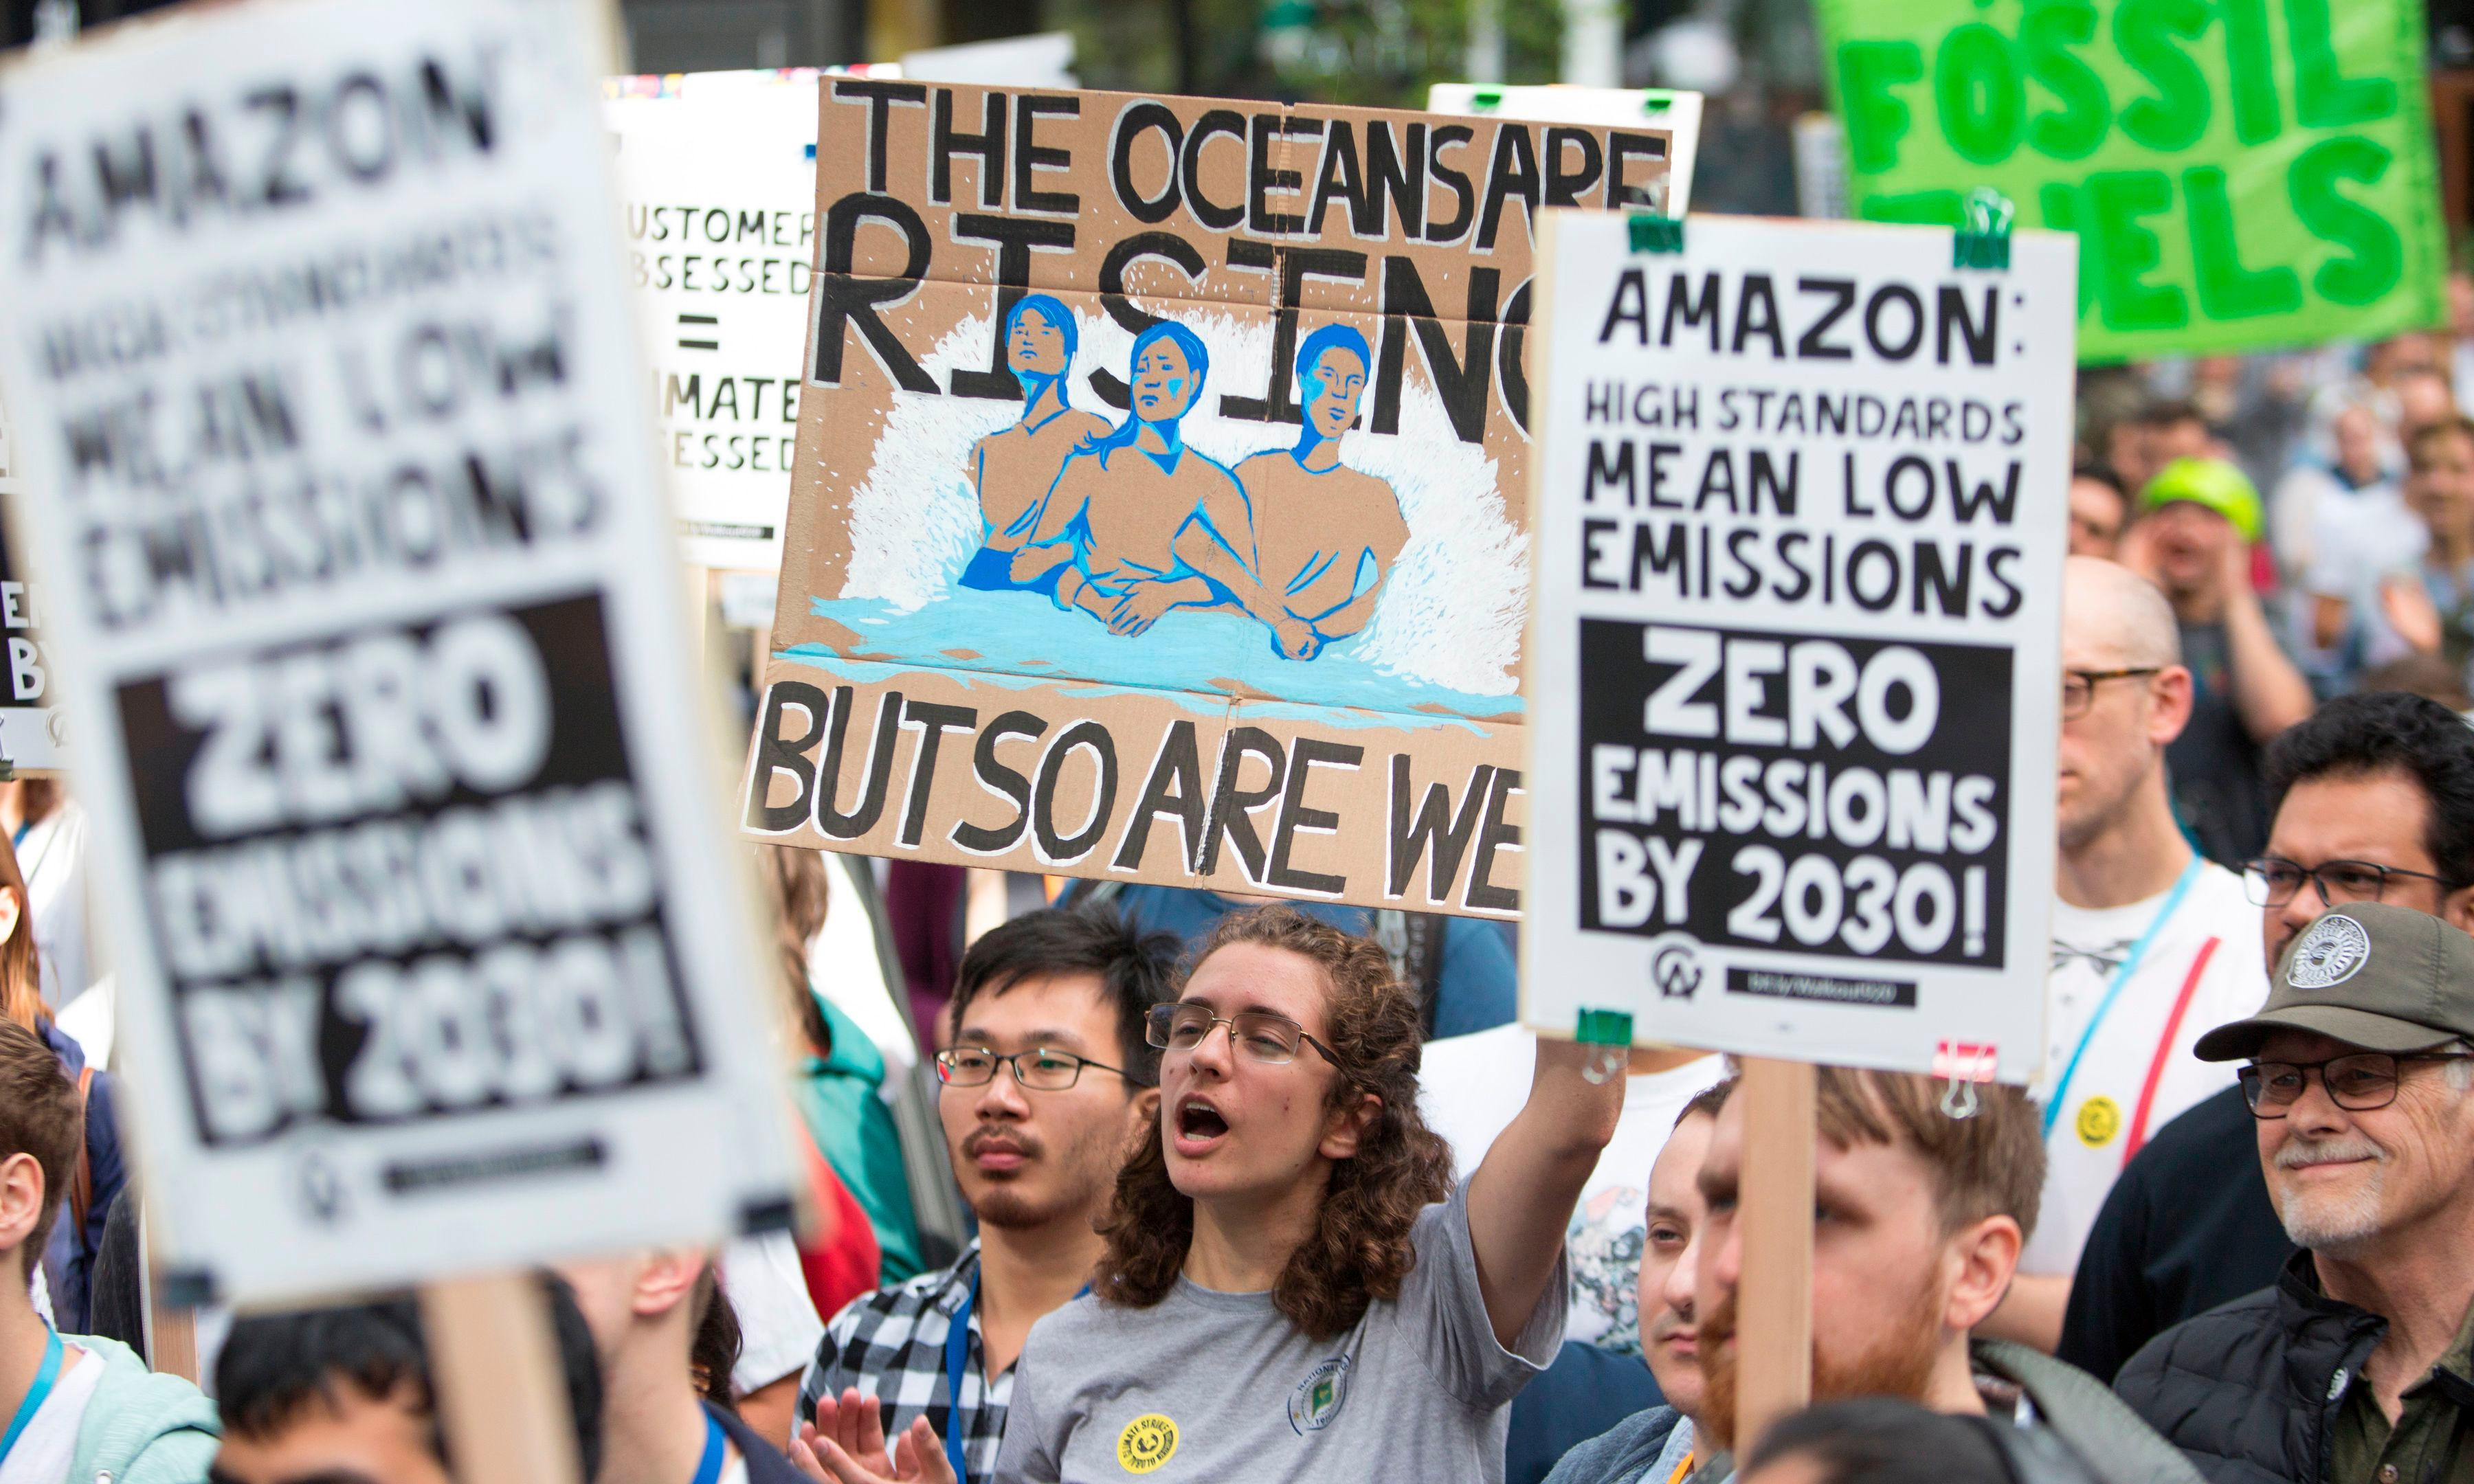 Hundreds of workers defy Amazon rules to protest company's climate failures